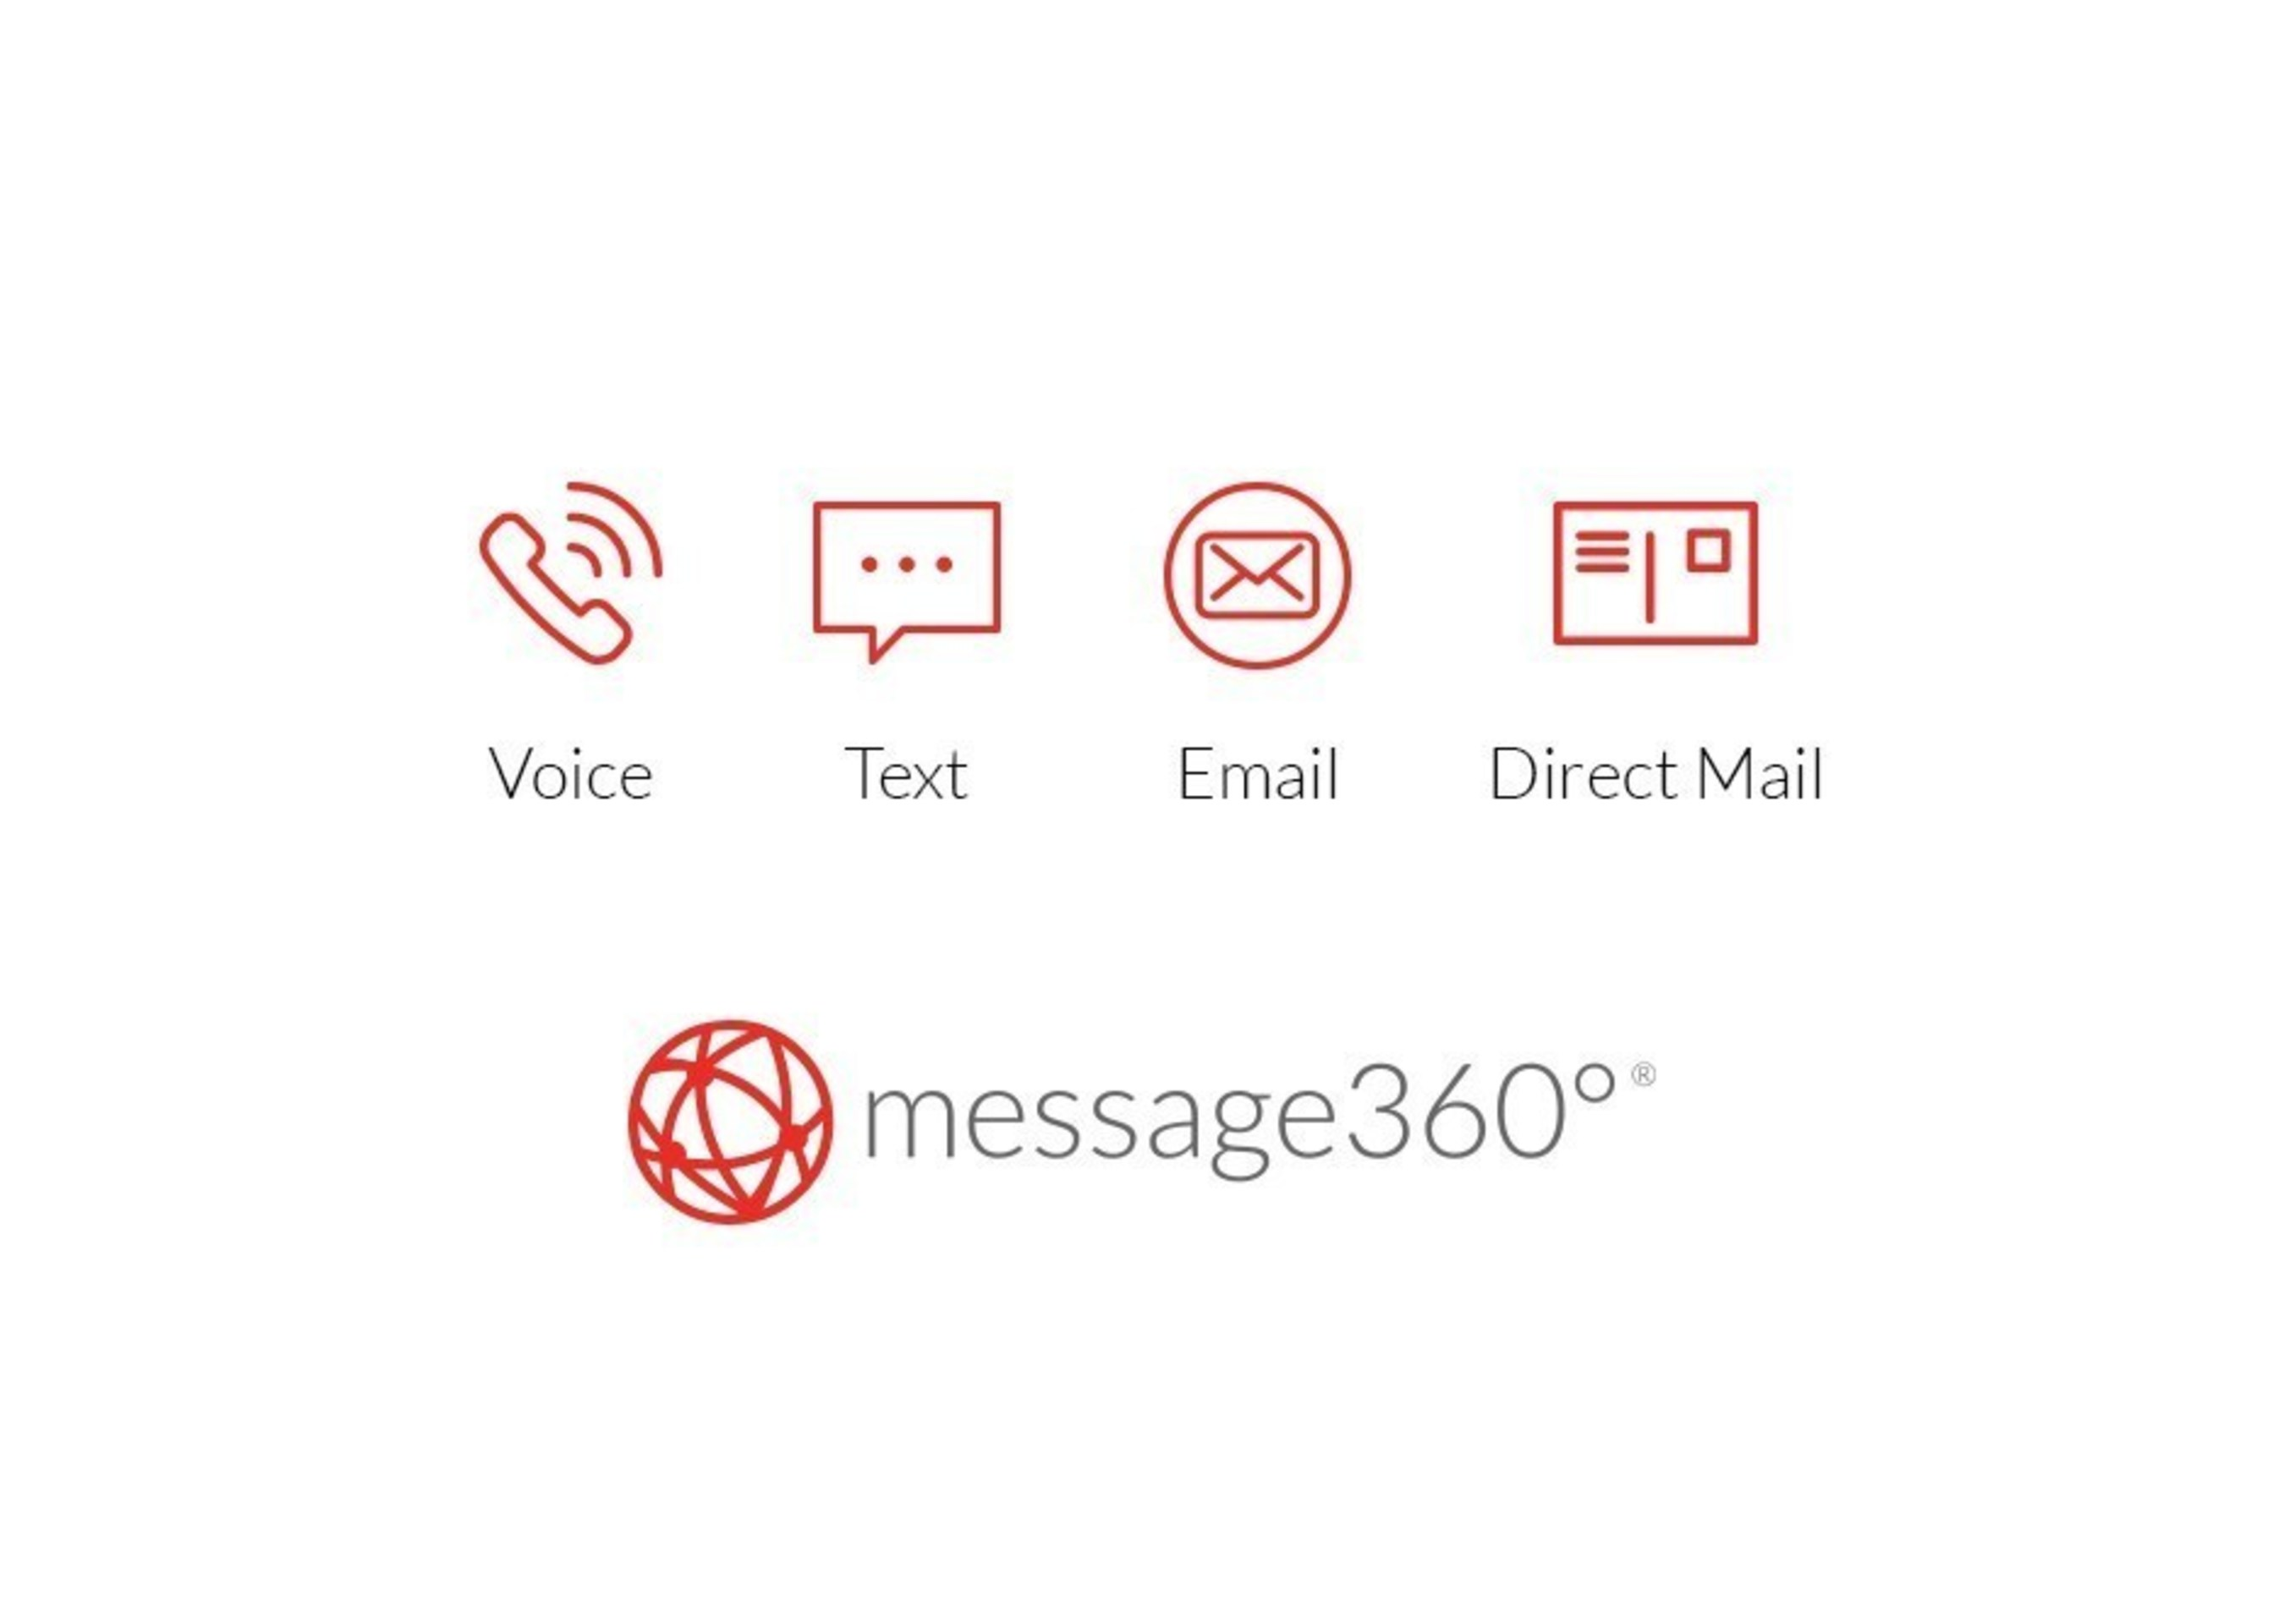 message360° is a Cloud Communications platform, built for developers, that provides the infrastructure to programmatically communicate more efficiently. It's one API that integrates voice, text, email, and direct mail, with just a few lines of code.